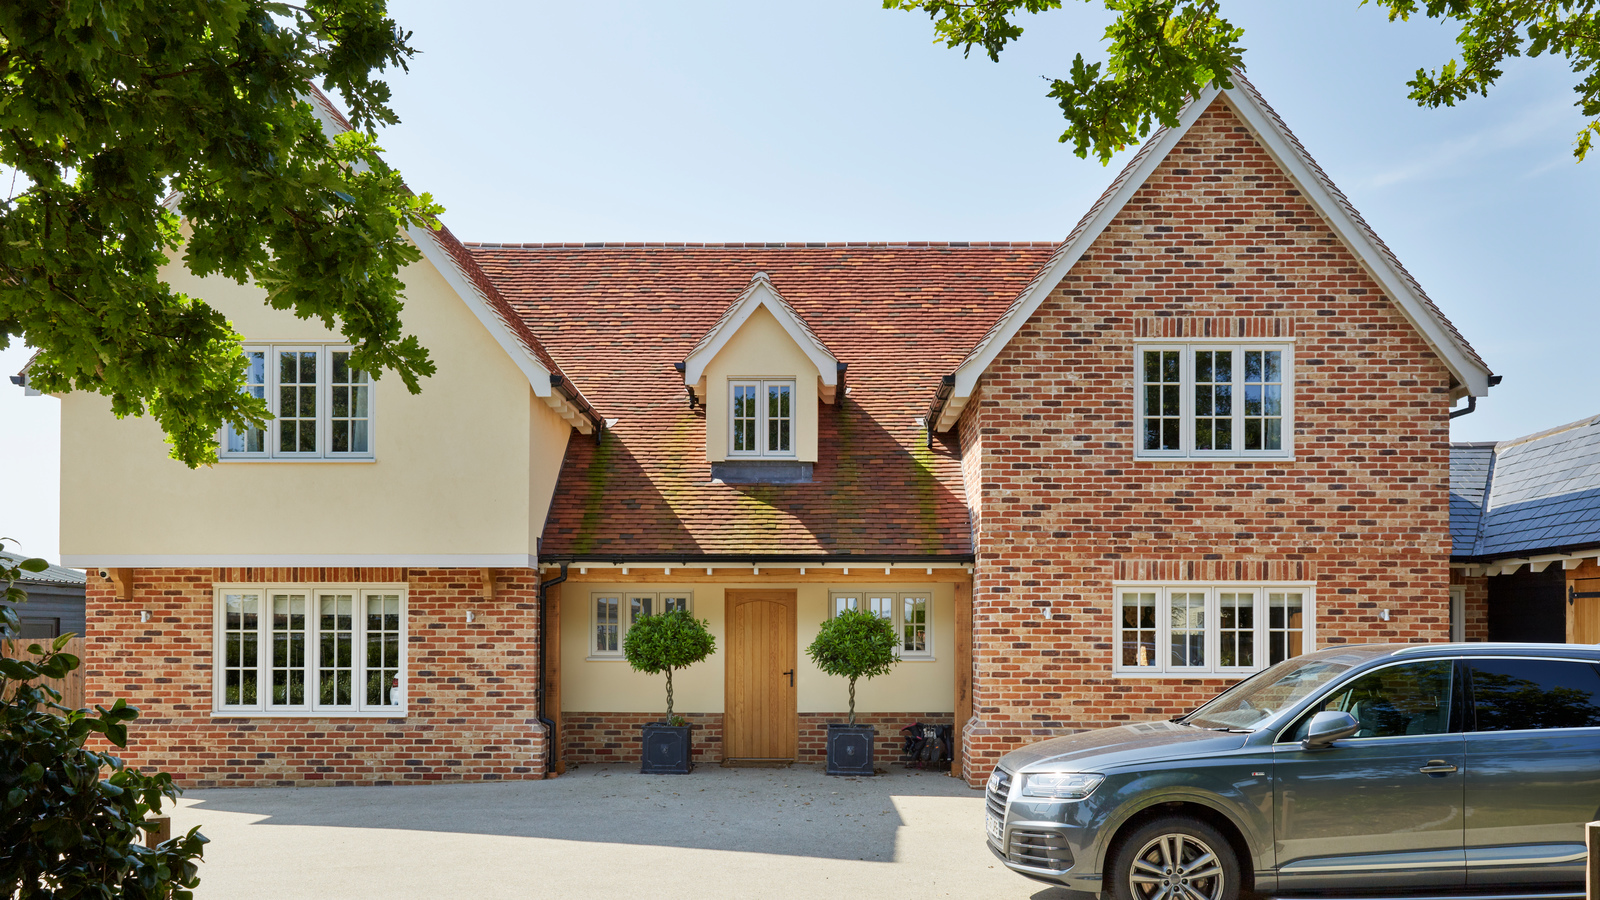 Replacement Timber Windows for Essex Family Home